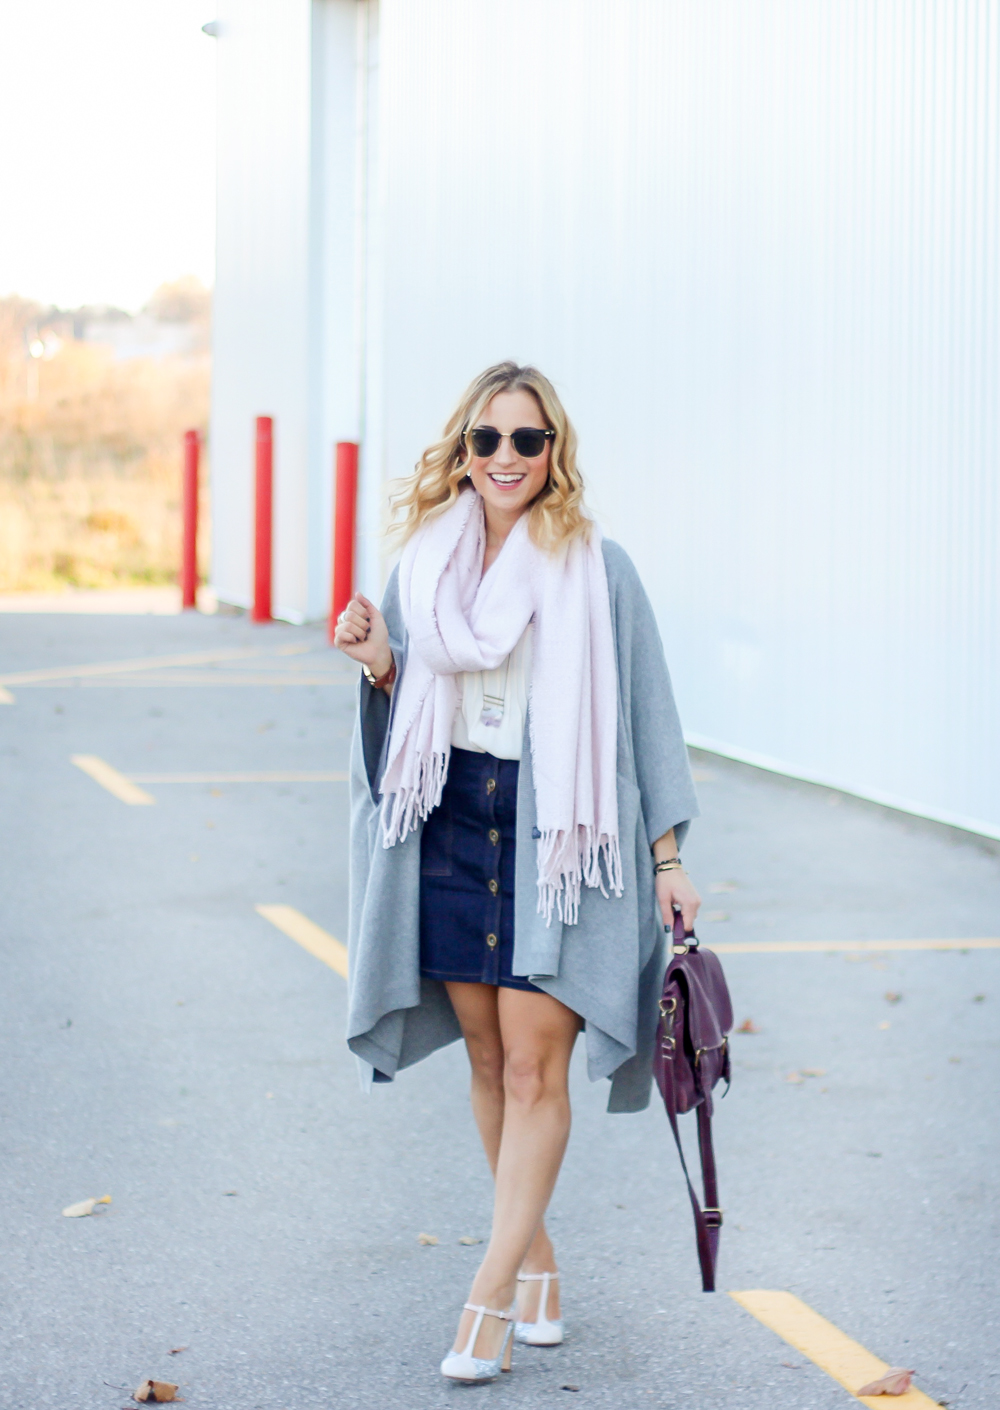 Fall outfit idea - wearing a poncho from Aritzia, Banana Republic Button Front Skirt, and pink scarf from Indigo